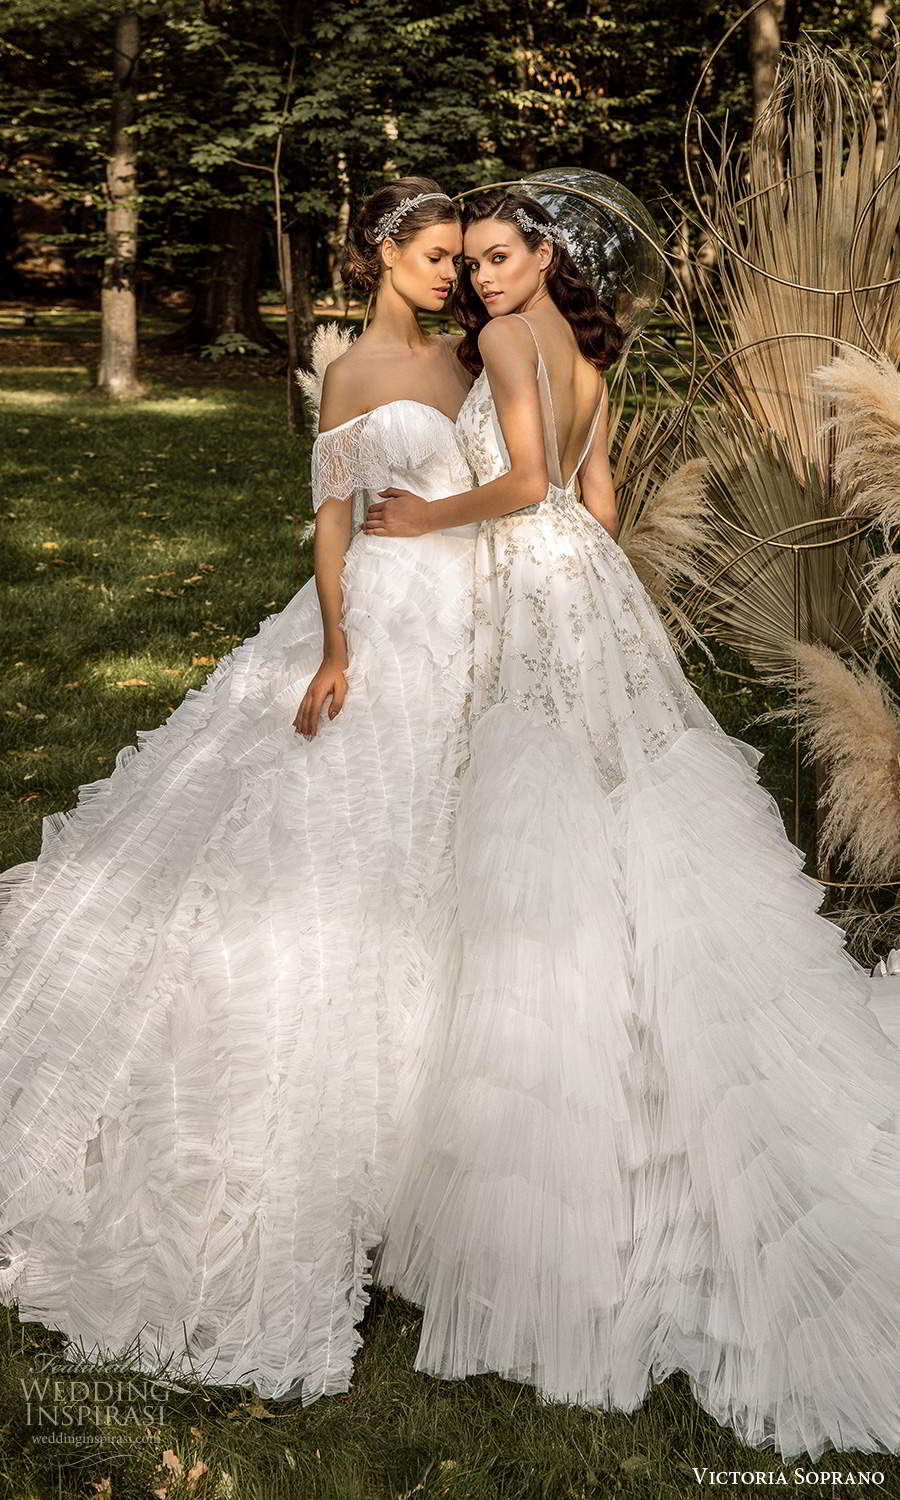 victoria soprano 2022 bridal off shoulder sleeves sweetheart neckline ruffle skirt a line ball gown wedding dress chapel train (8) sv